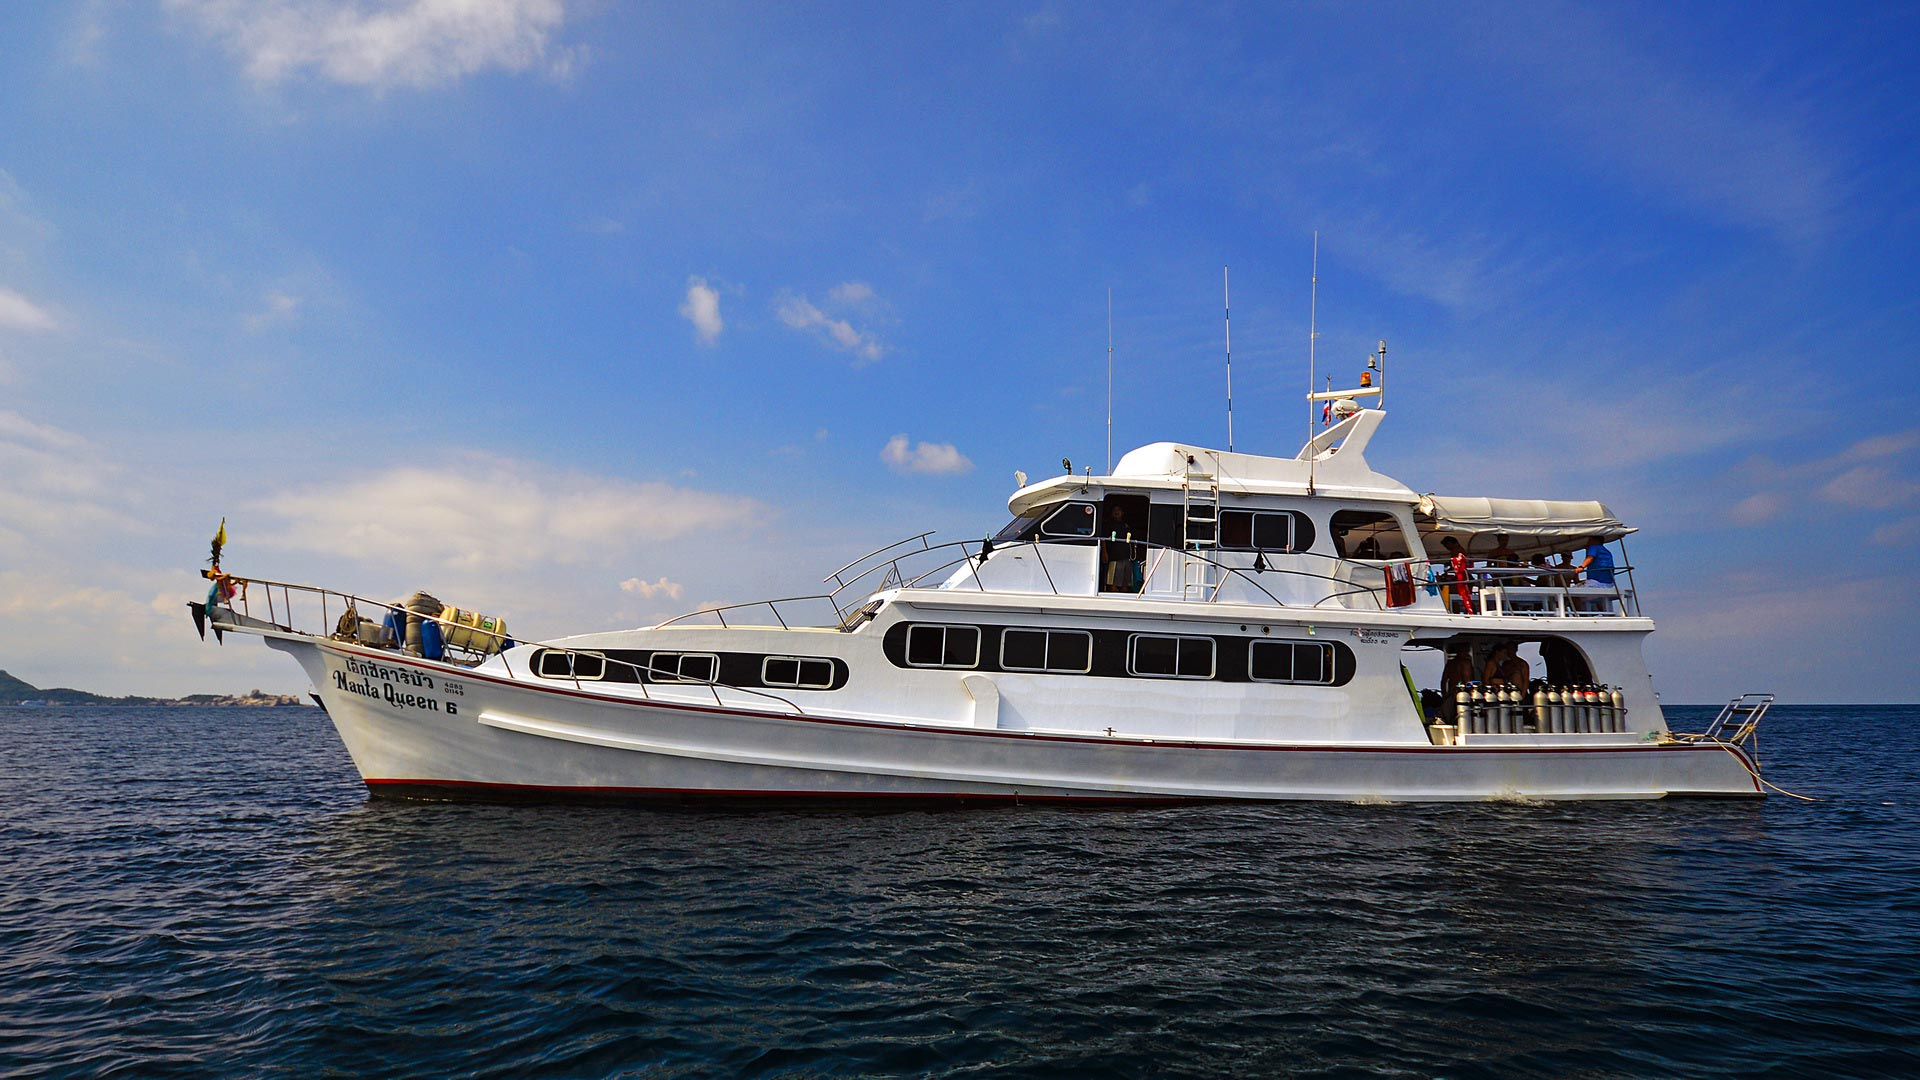 Thailand liveaboard Manta Queen 6  for the 4 days tour